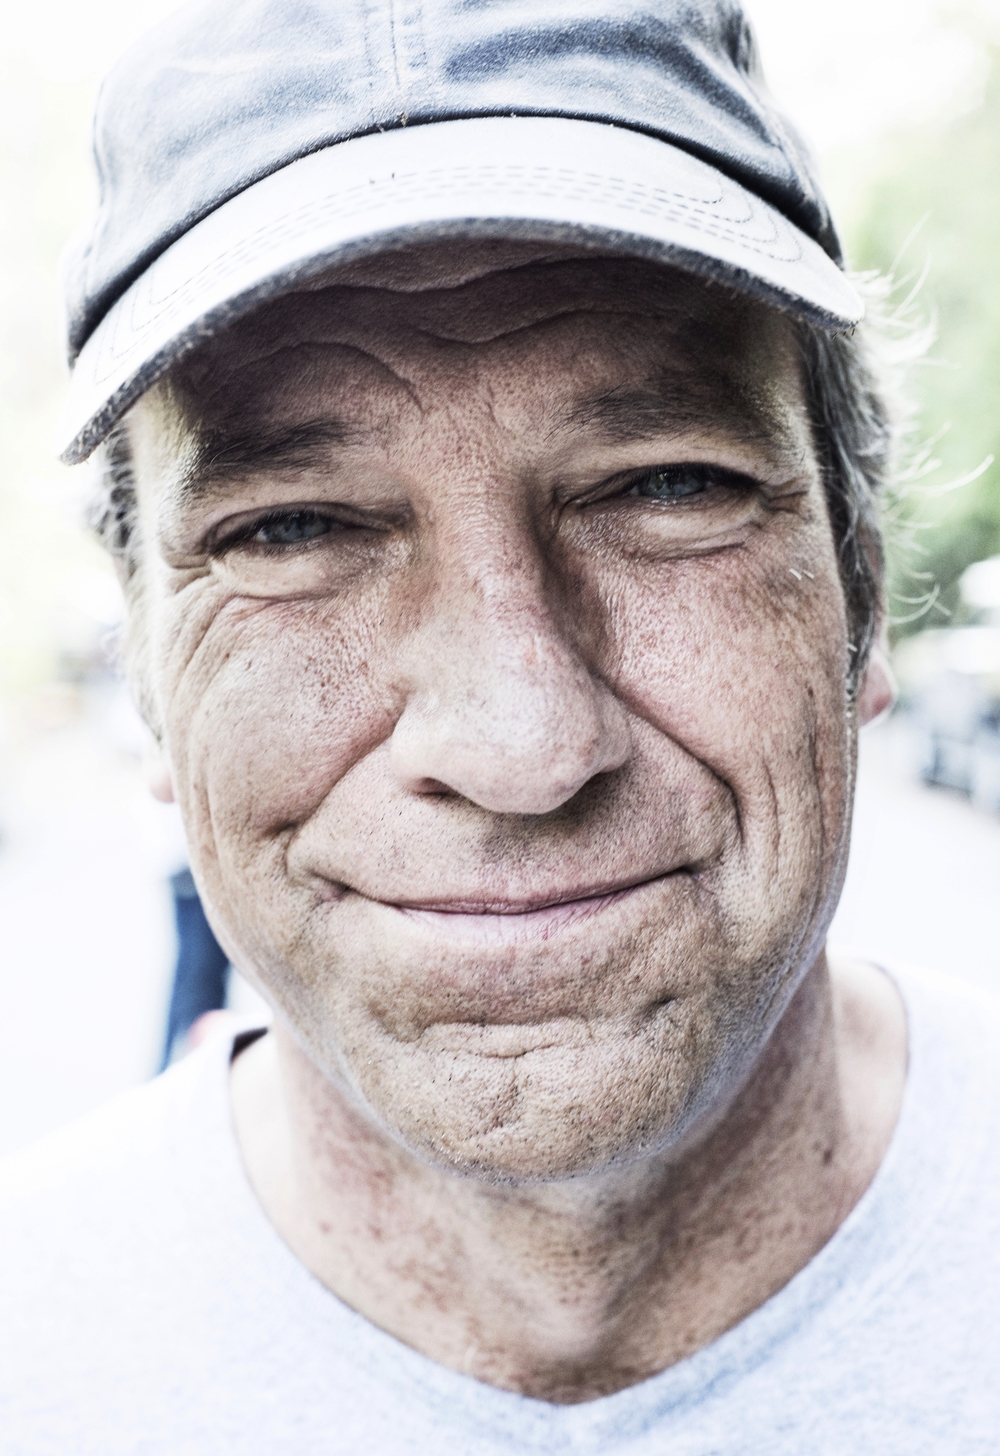 Mike Rowe - May 16